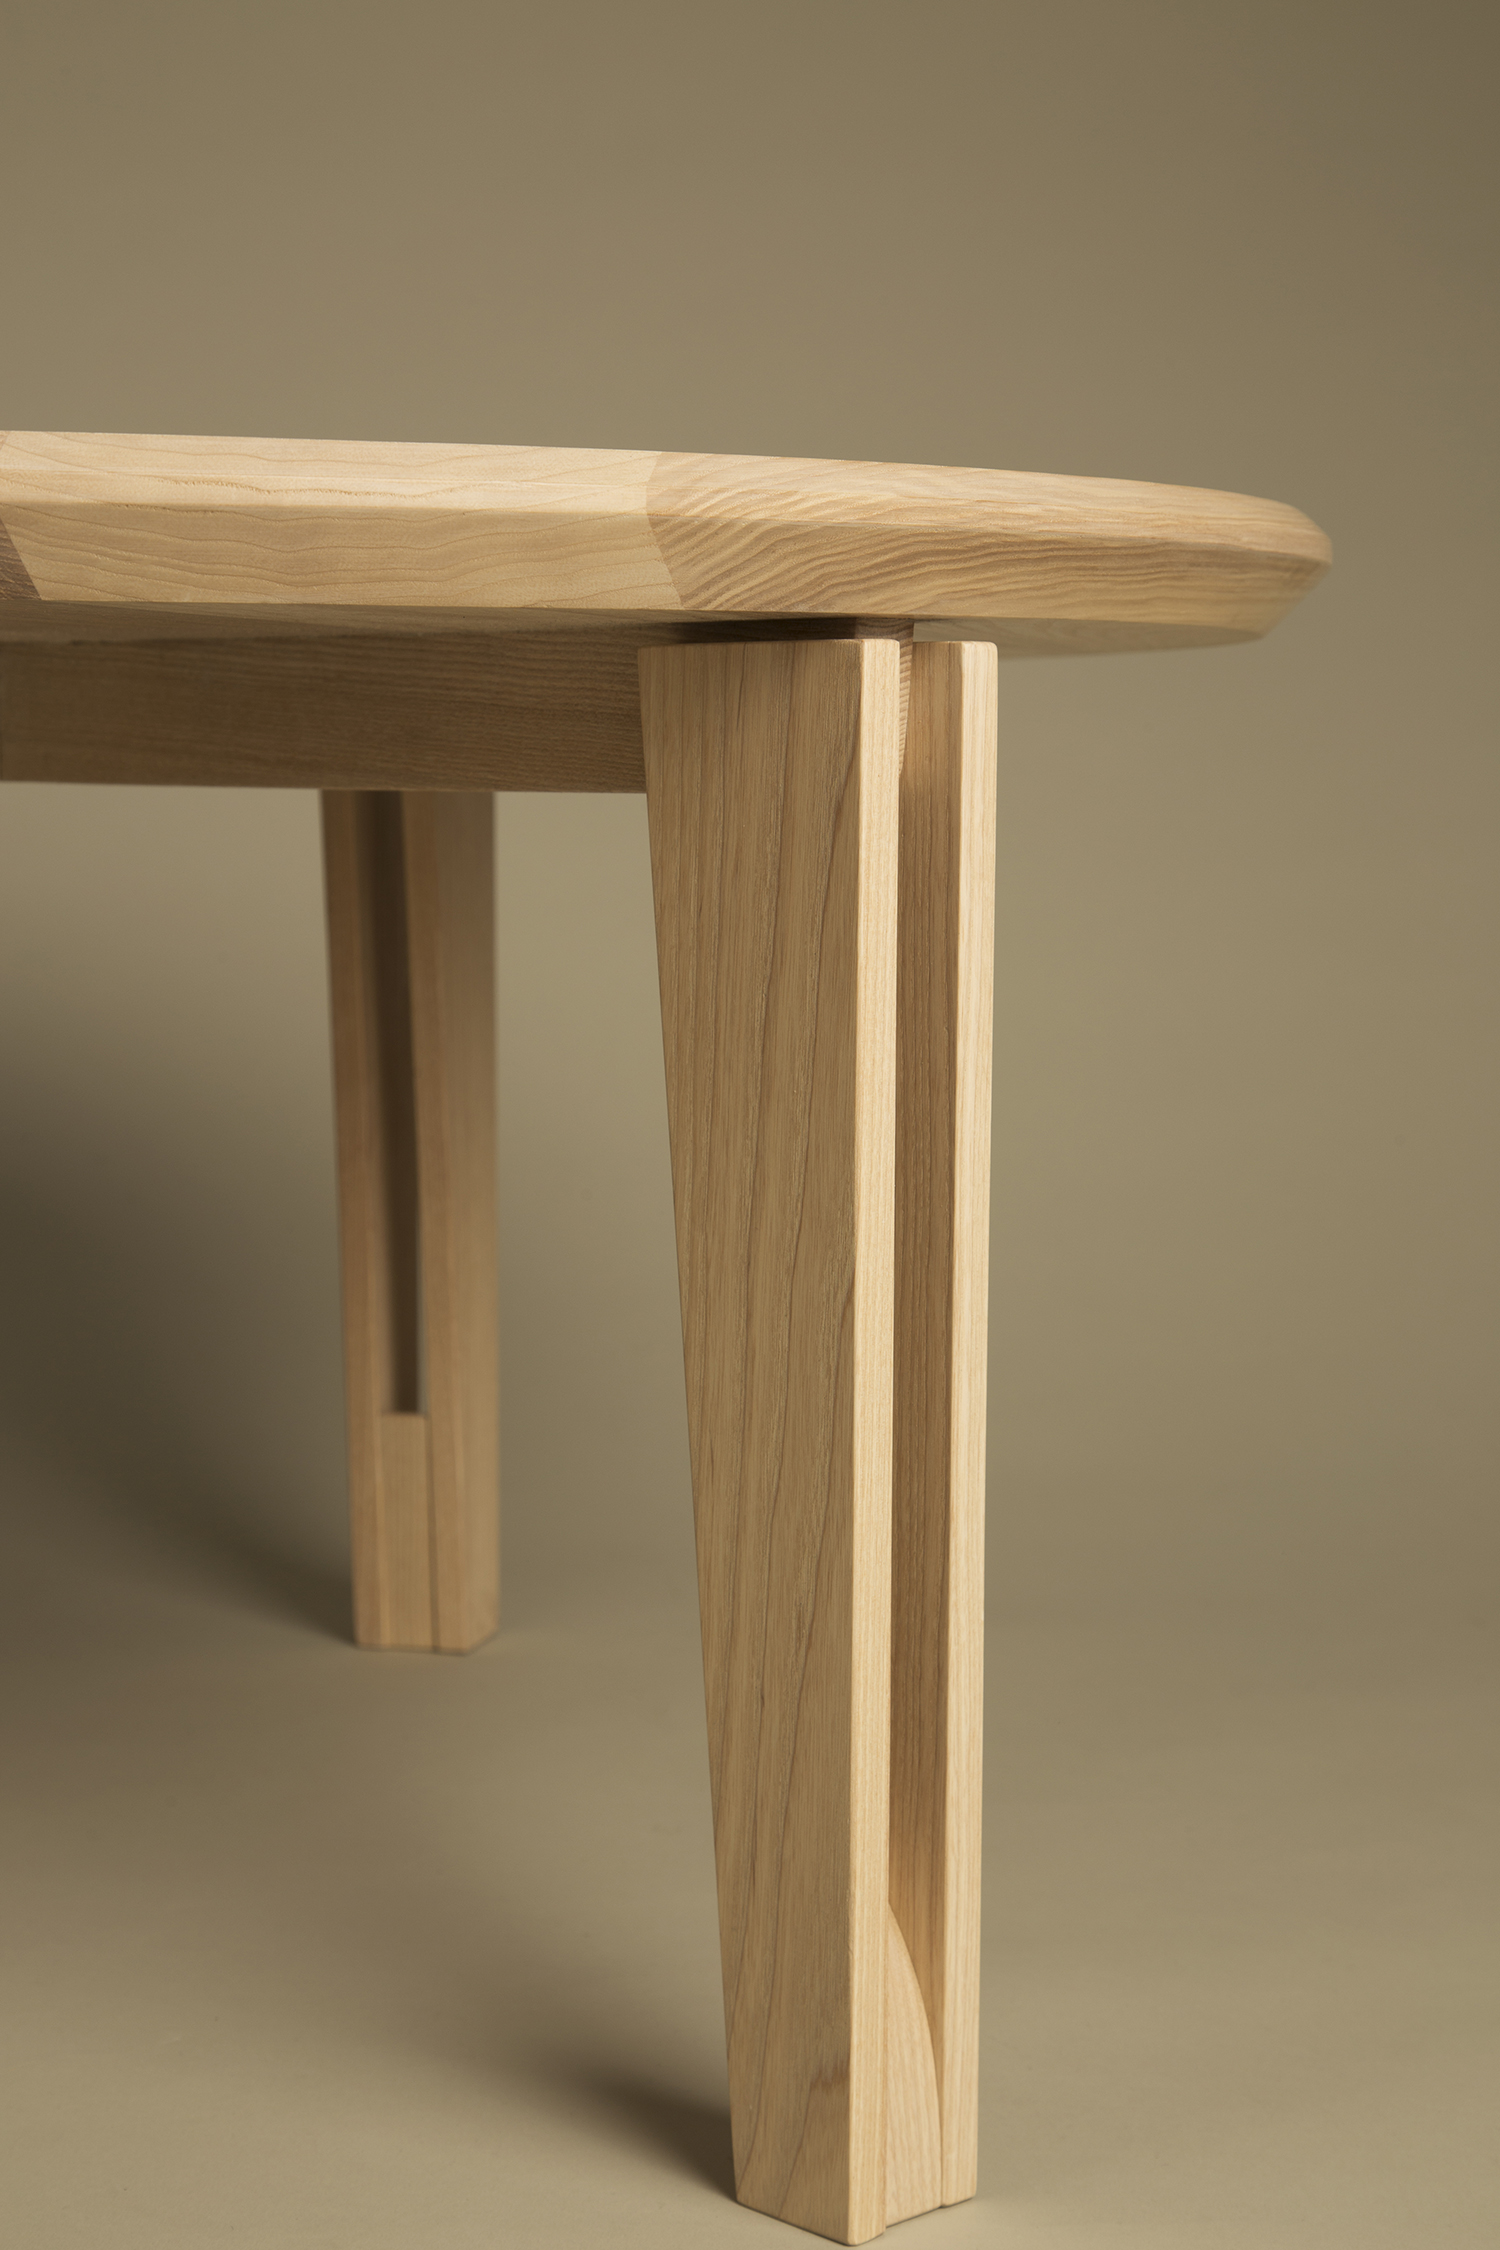 Brace Coffee Table by Alan Flannery Furniture Design L10.jpg